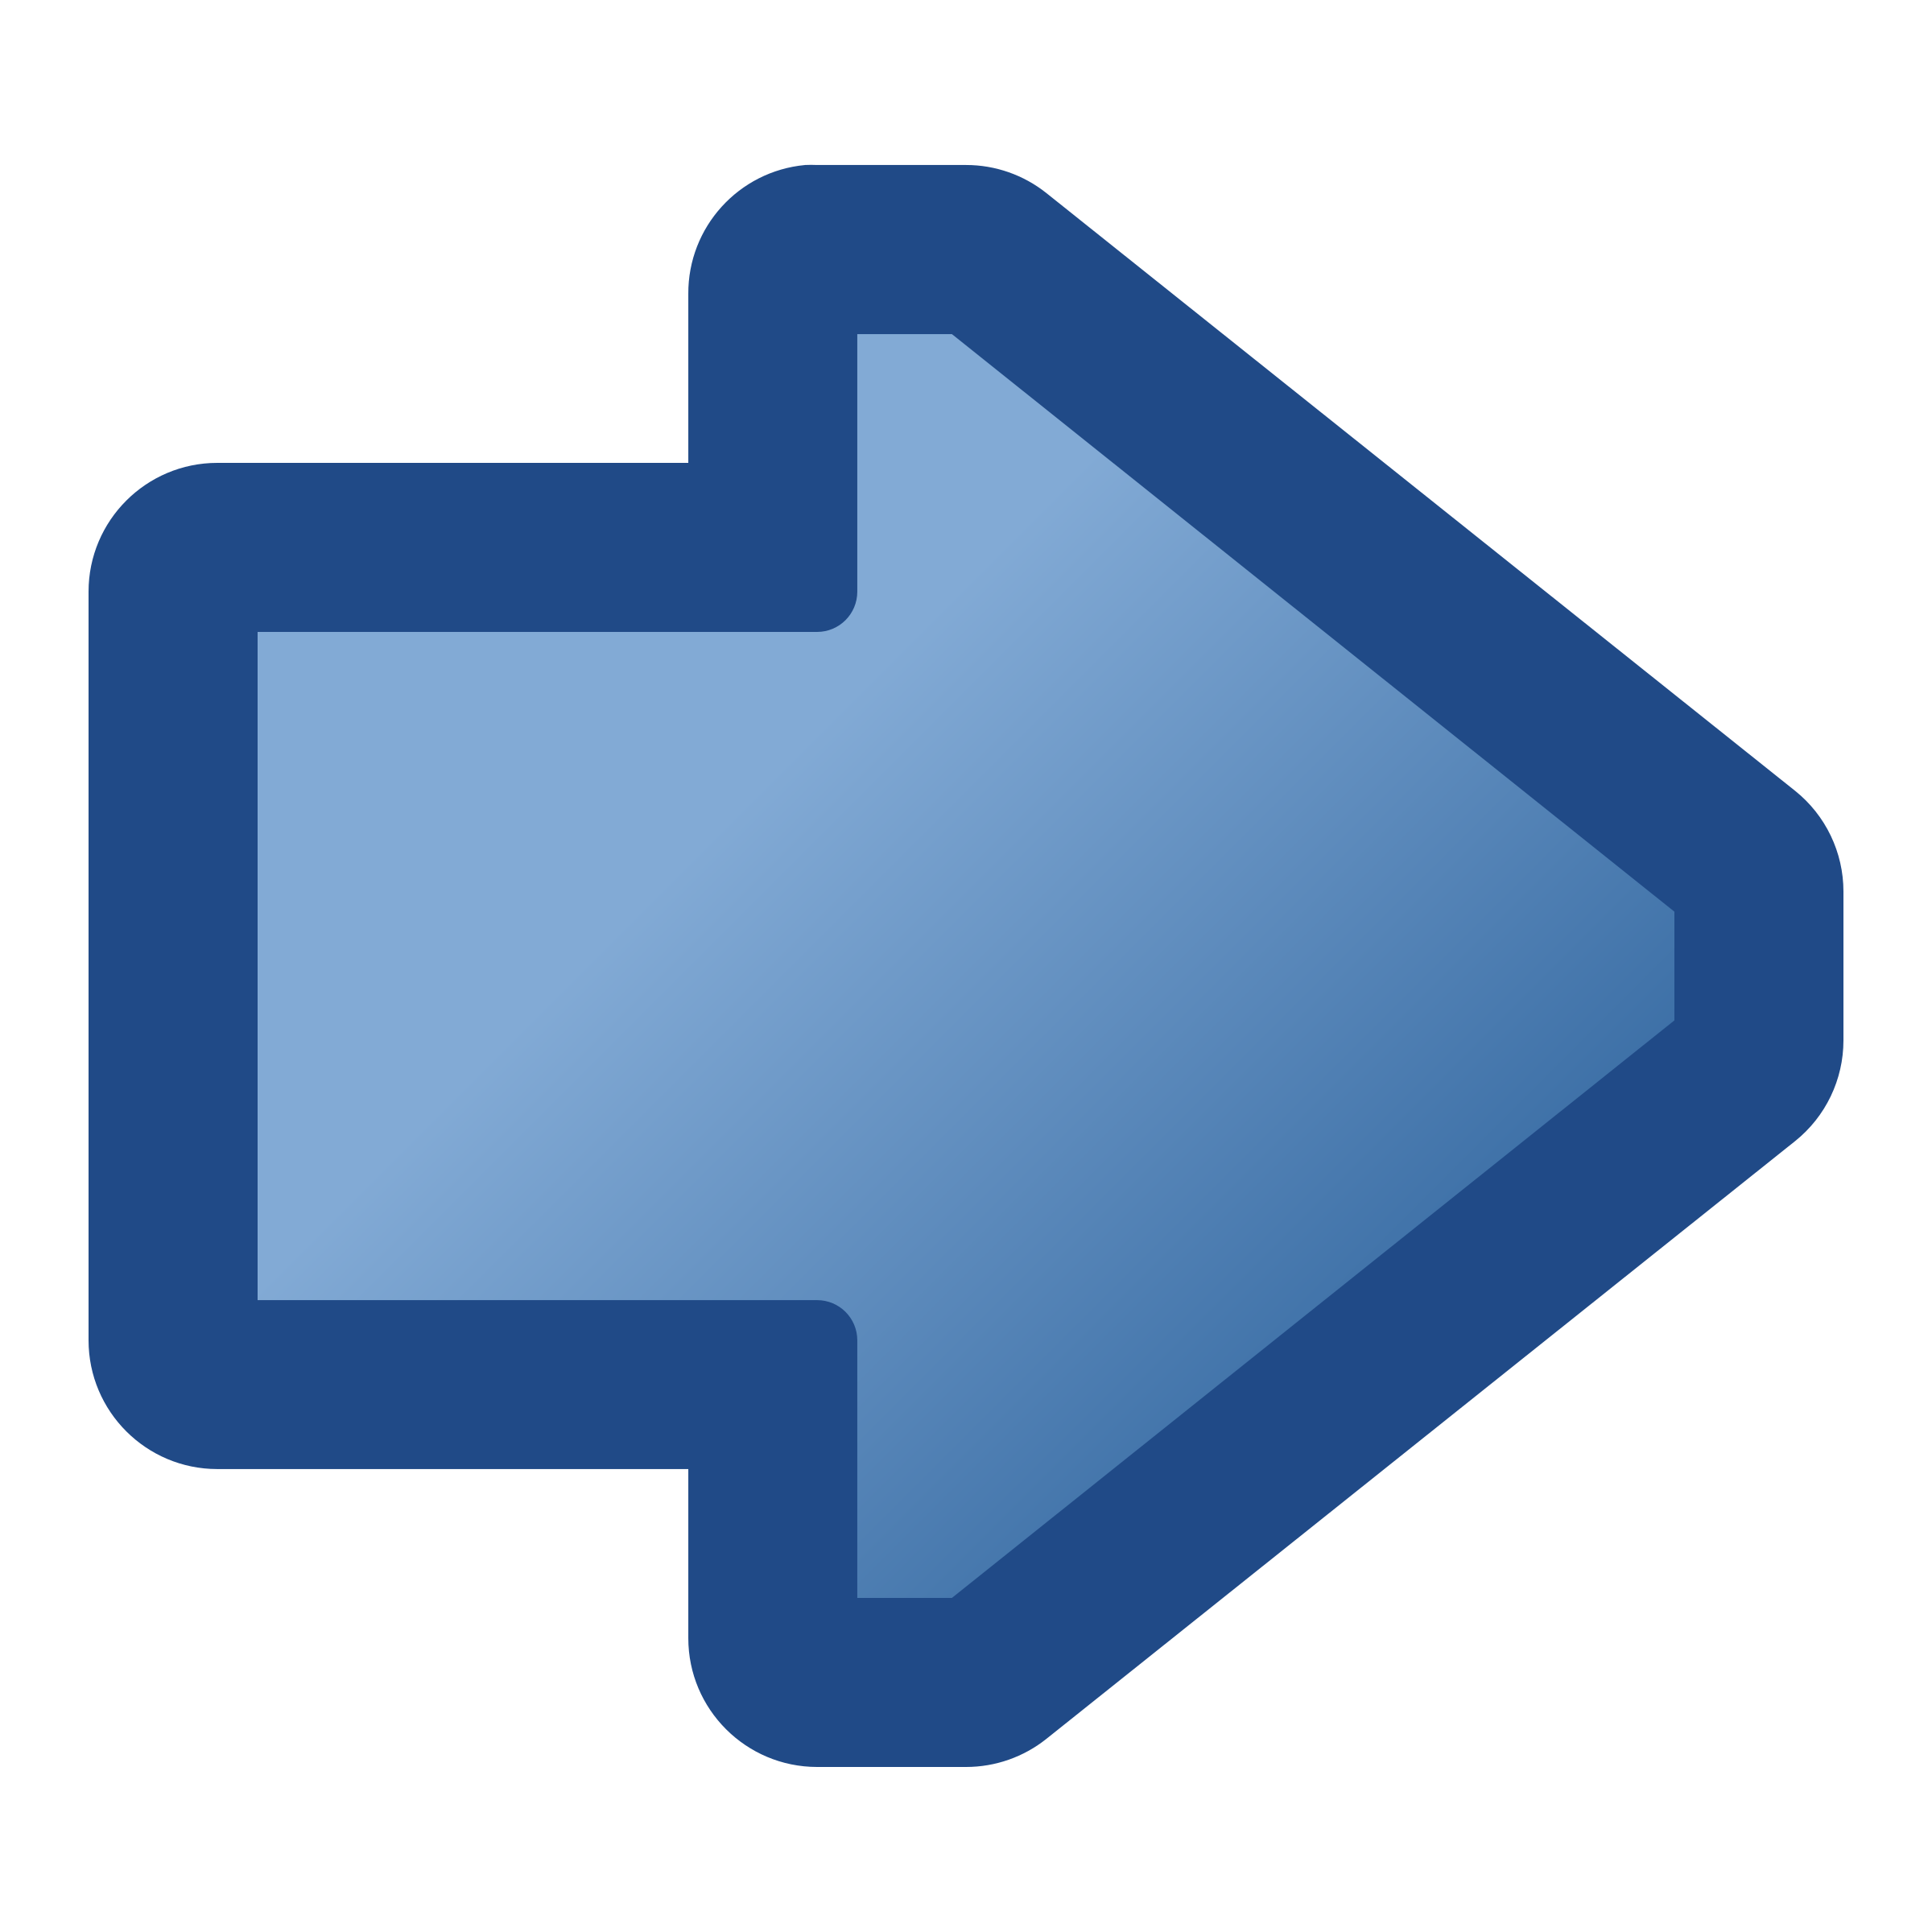 icon_arrow_right_blue by jean_victor_balin